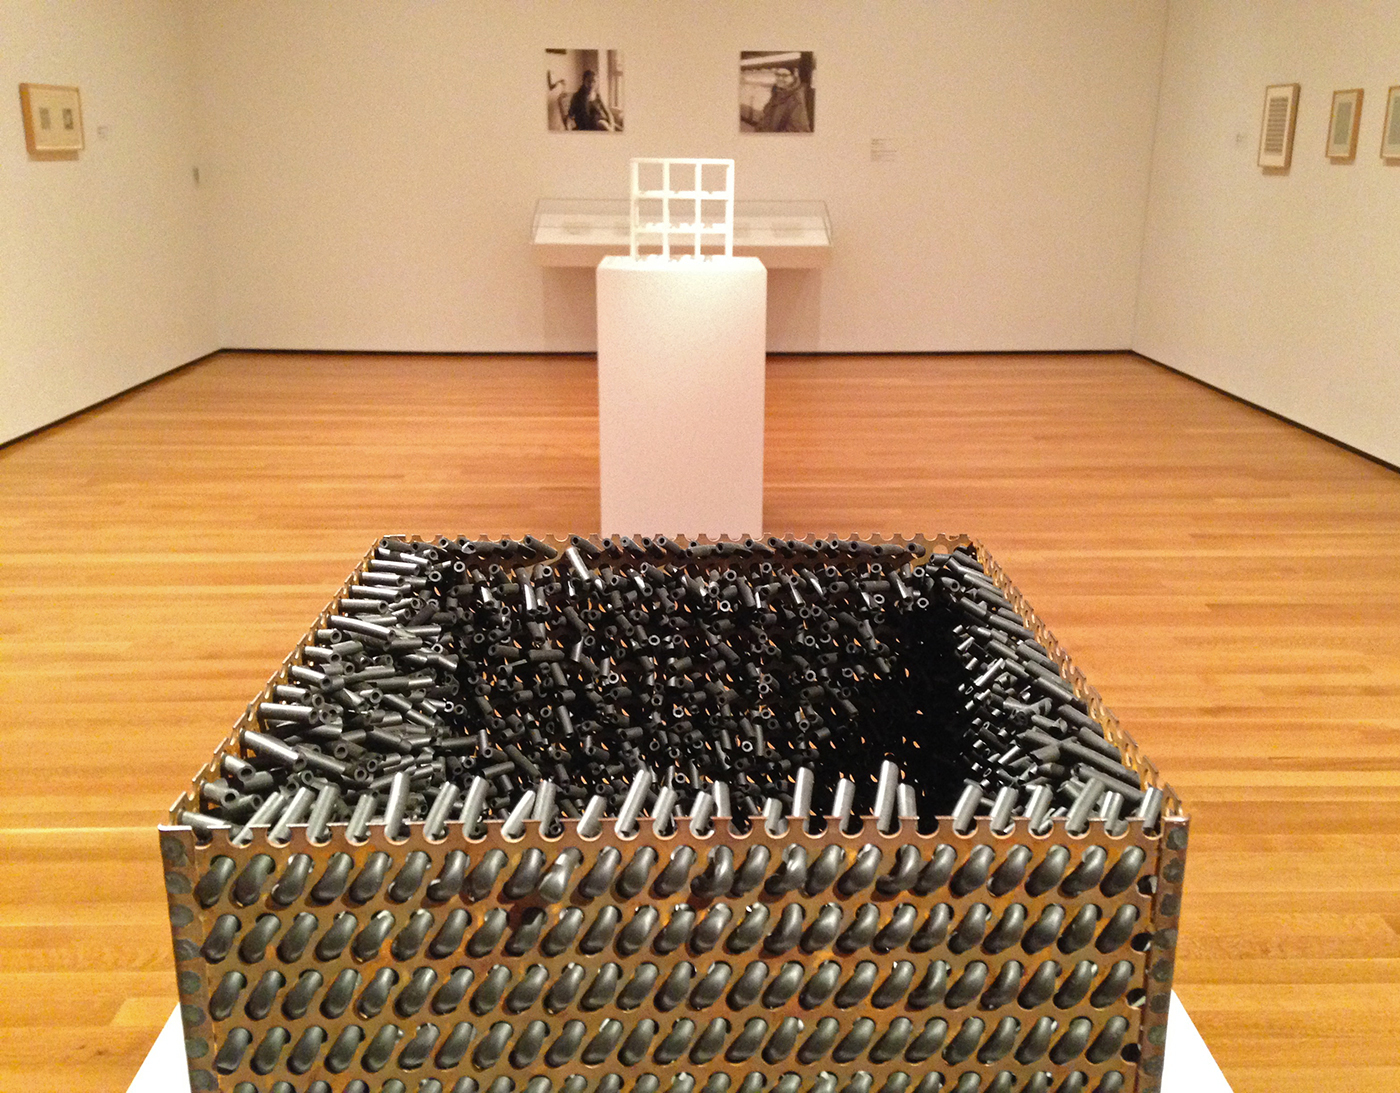 """Foreground: Eva Hesse, """"Accession V"""" (1968), galvanized steel and rubber; background: Sol LeWitt, """"3 x 3 x 3"""" (1965), painted wood"""